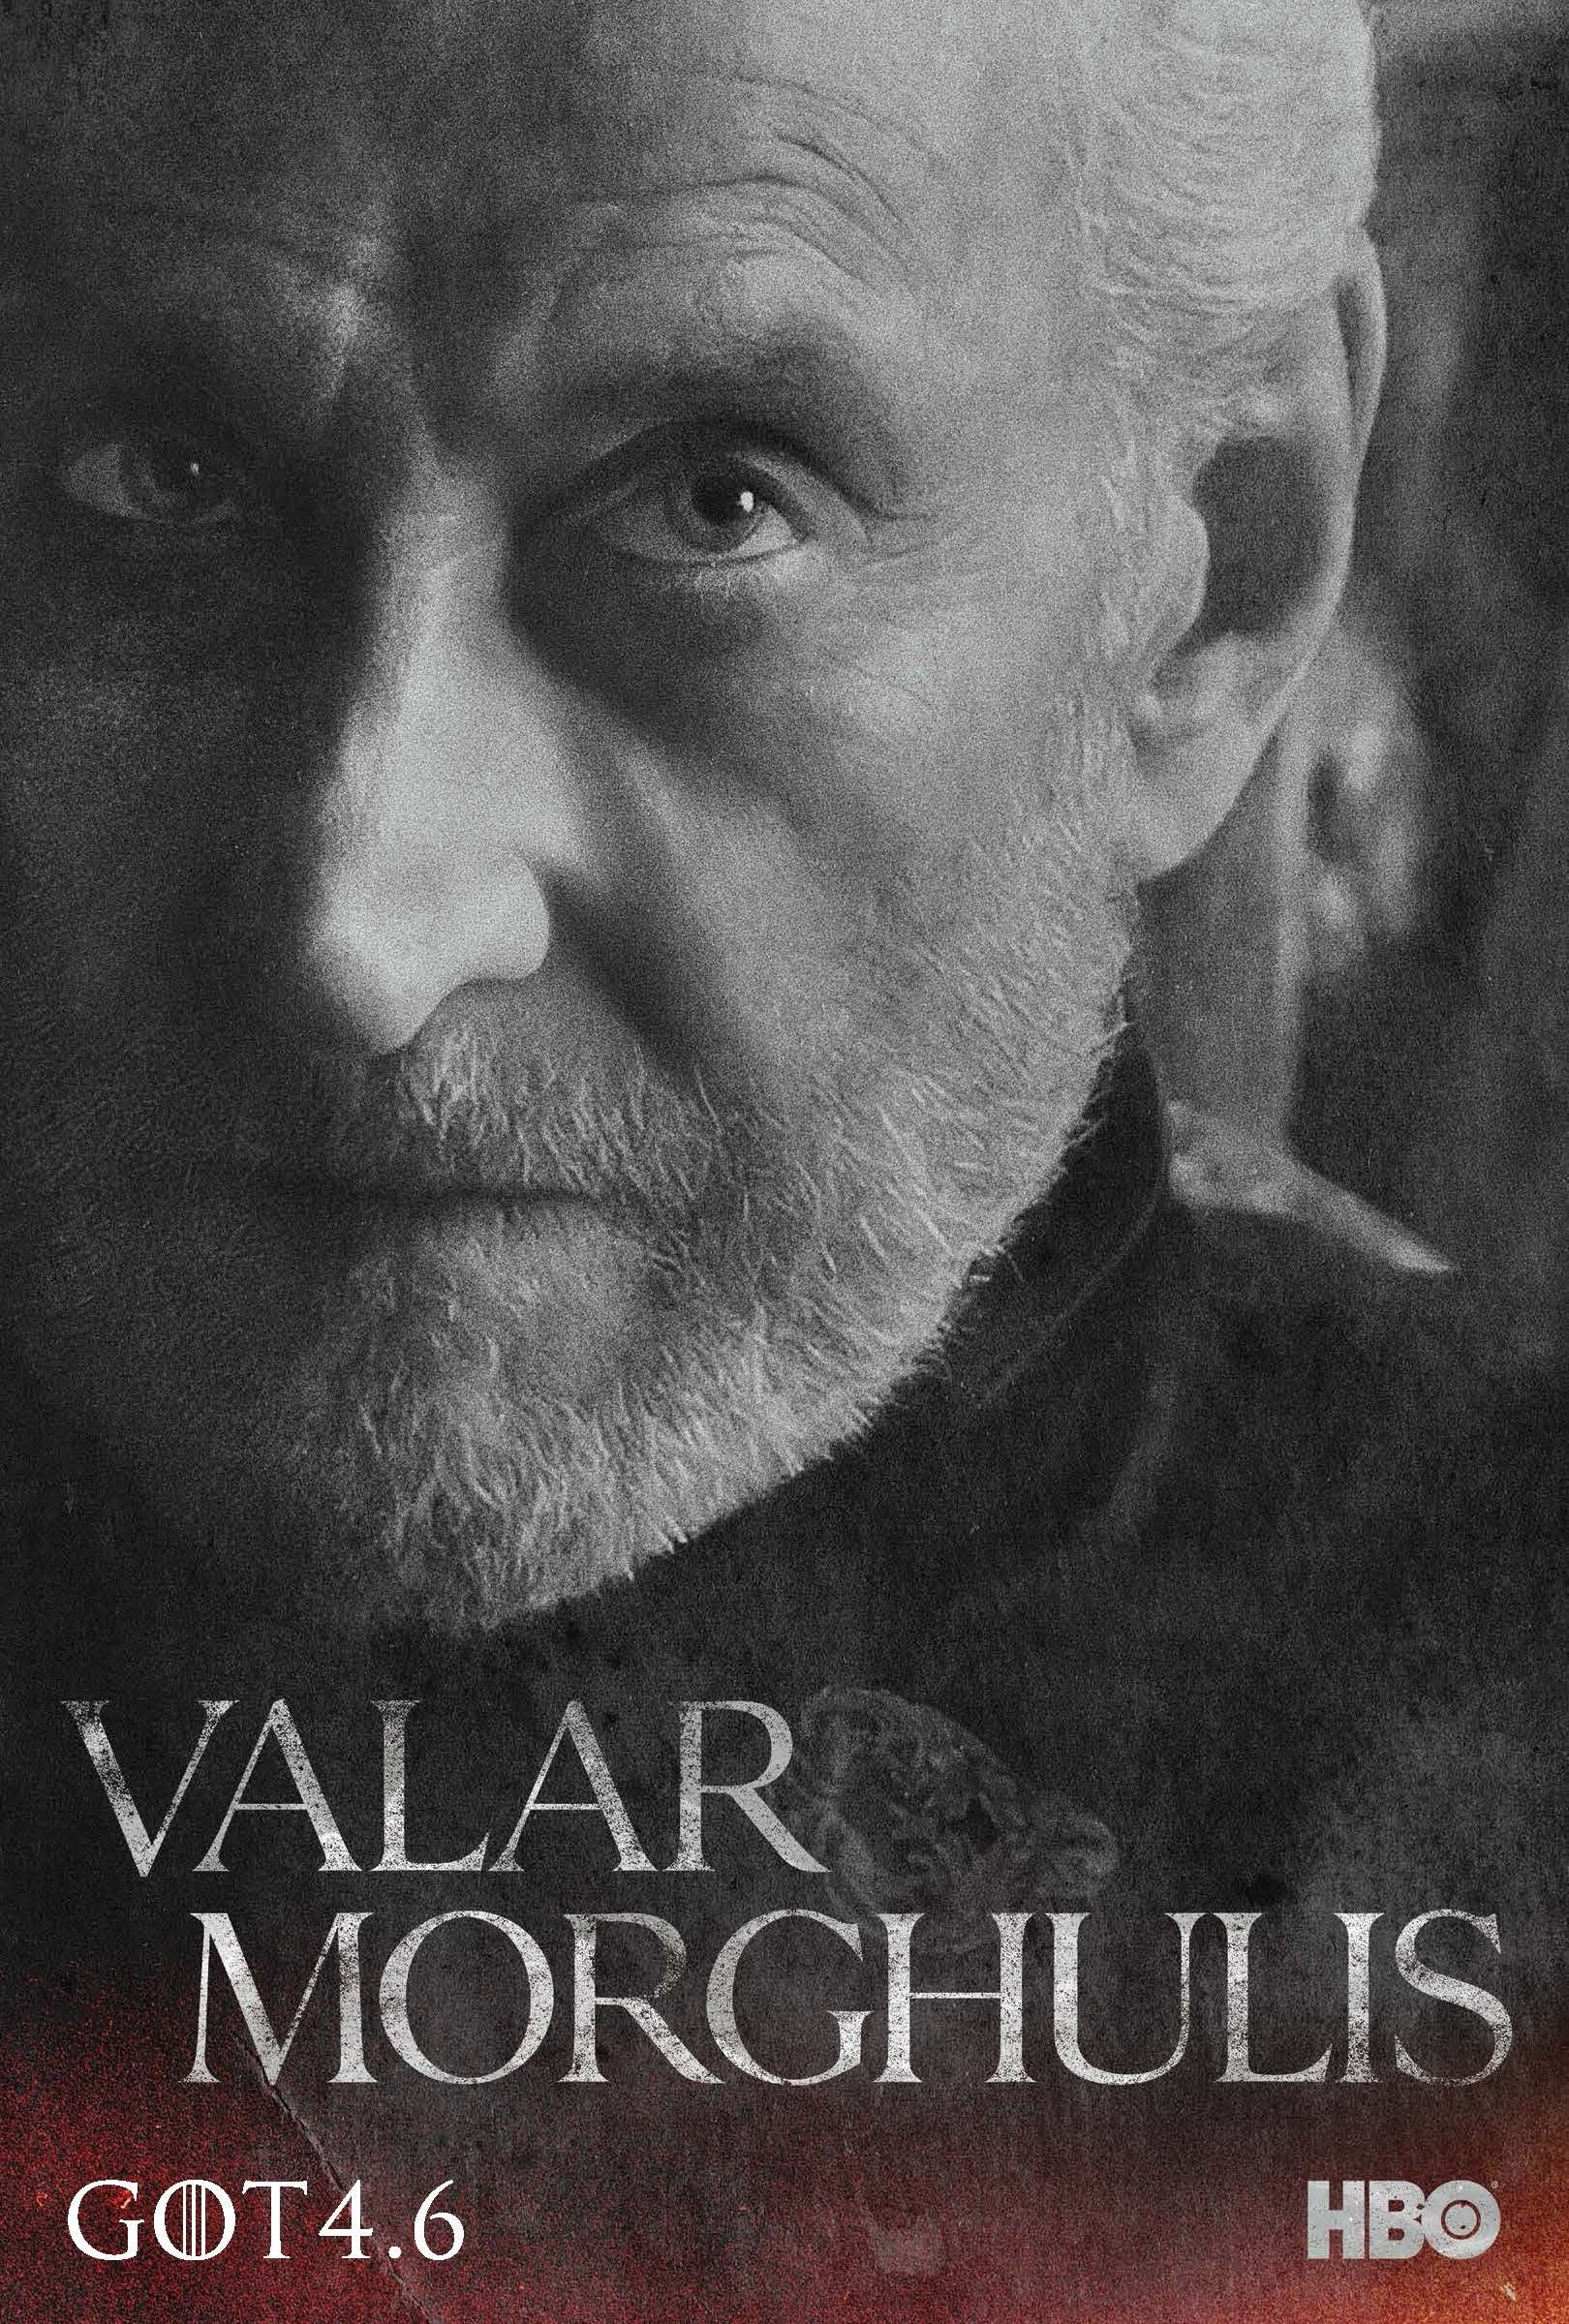 Game Of Thrones Season 4 Character Poster Tywin Lannister With